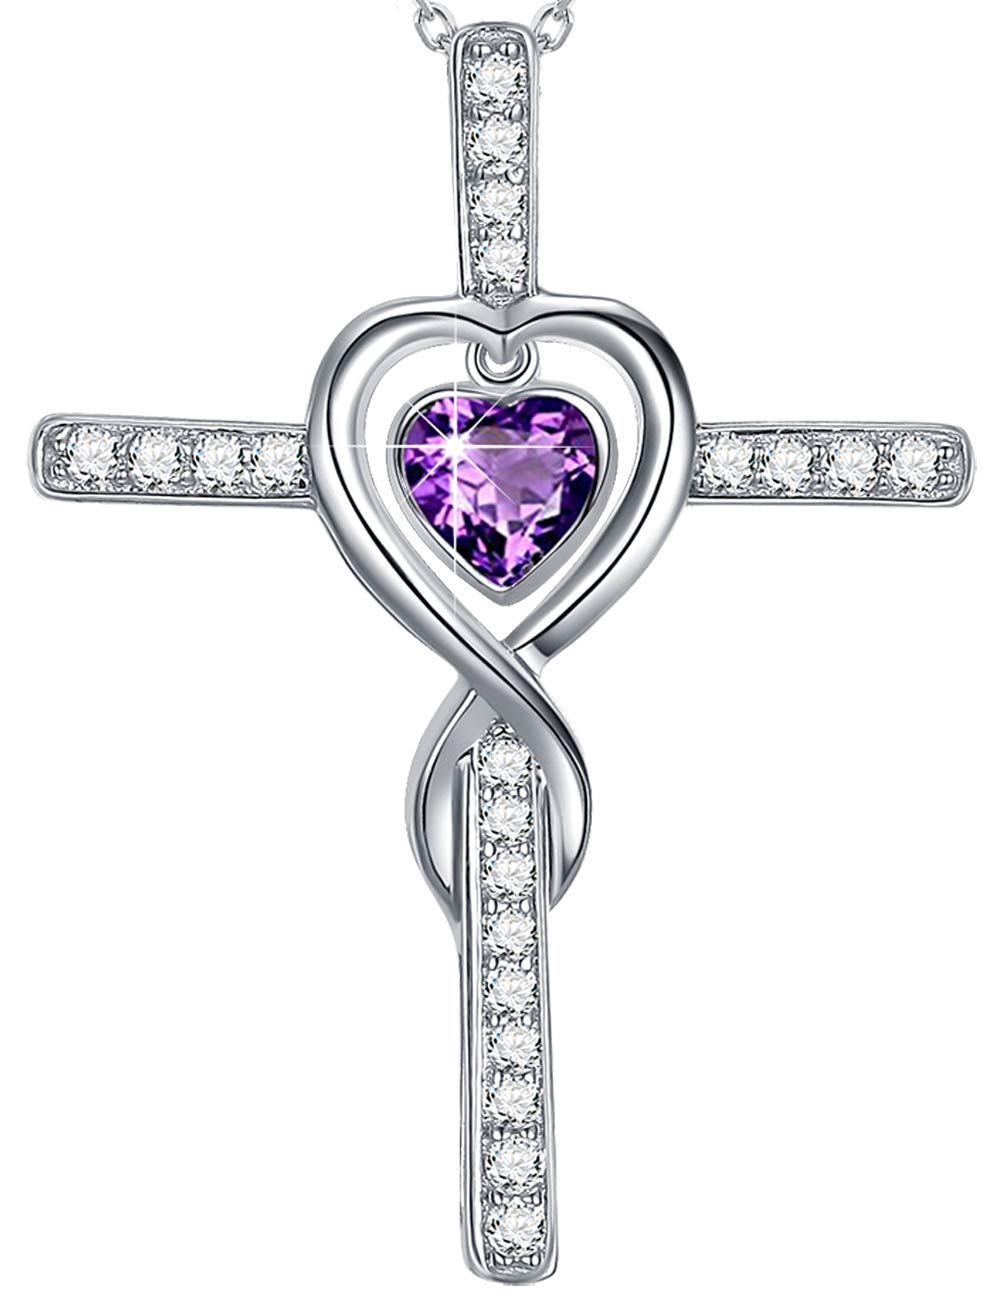 Love Infinity God Cross Necklace Gifts for Women Purple Amethyst Fine Jewelry Anniversary Birthday Gifts for Her Wife for Daughter Girlfriend Fiancee Sterling Silver Swarovski 18''+2'' Chain